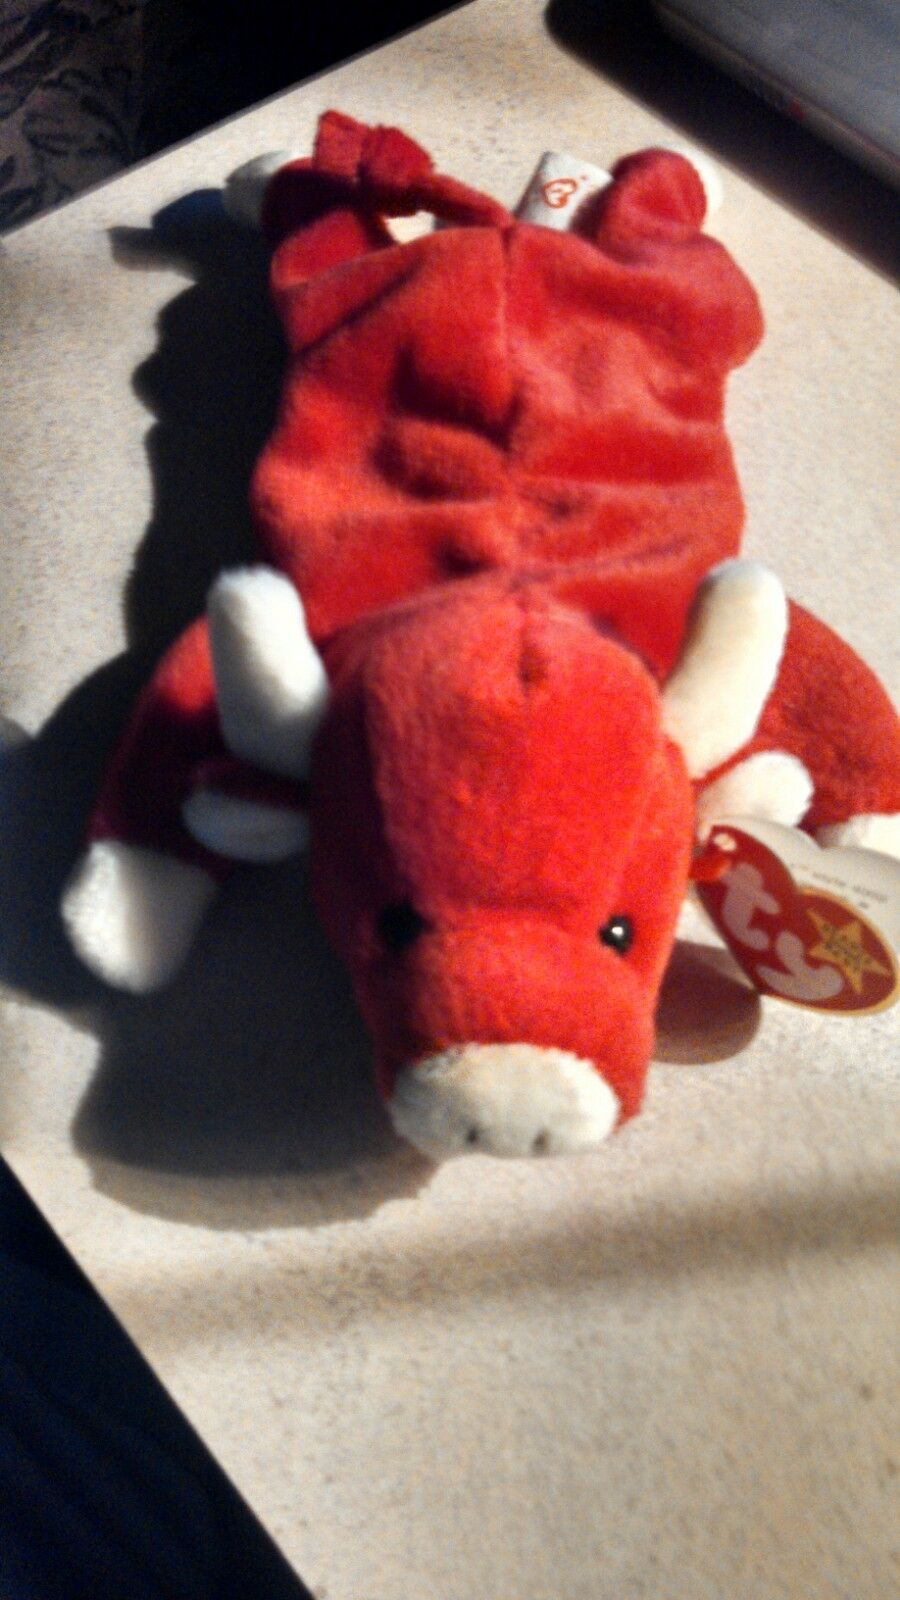 008421040025    RARE  VINTAGE 1995 SNORT TY BEANIE BABY RED BULL PLUSHIE WIT